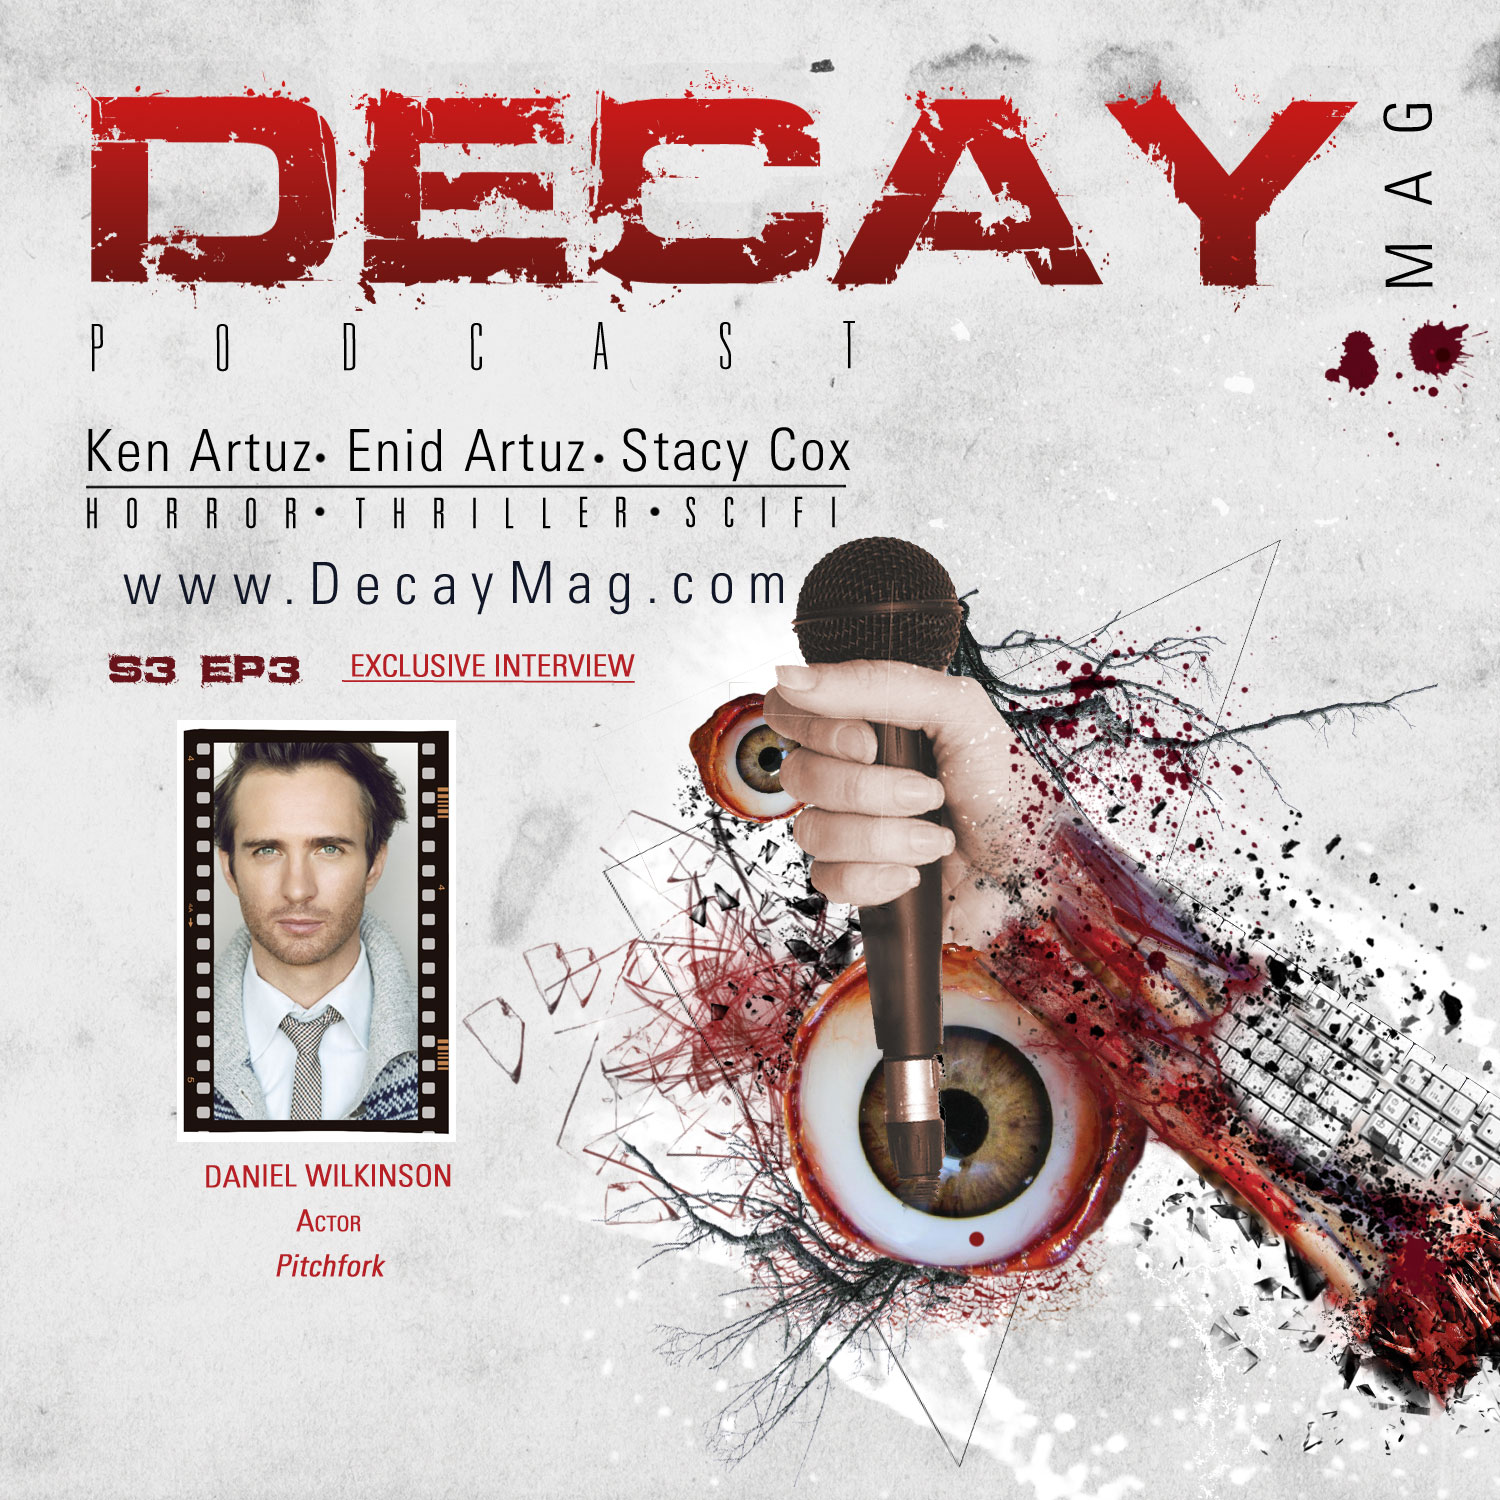 DecayMag Horror News Podcast: Exclusive Interview Daniel Wilkinson of Pitchfork